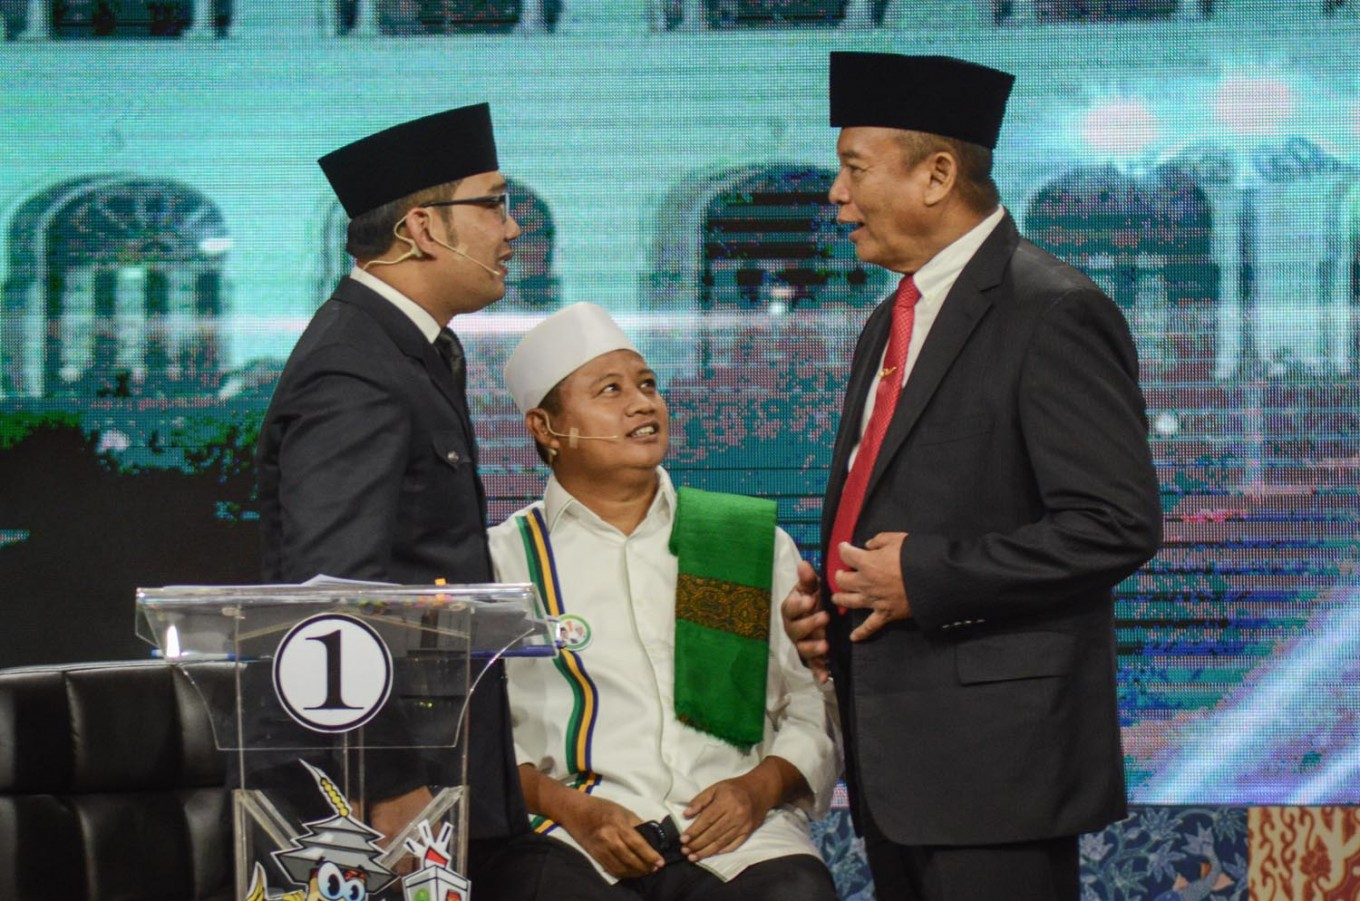 Ridwan Kamil urges W. Java netizens to end debate on teacher's dismissal